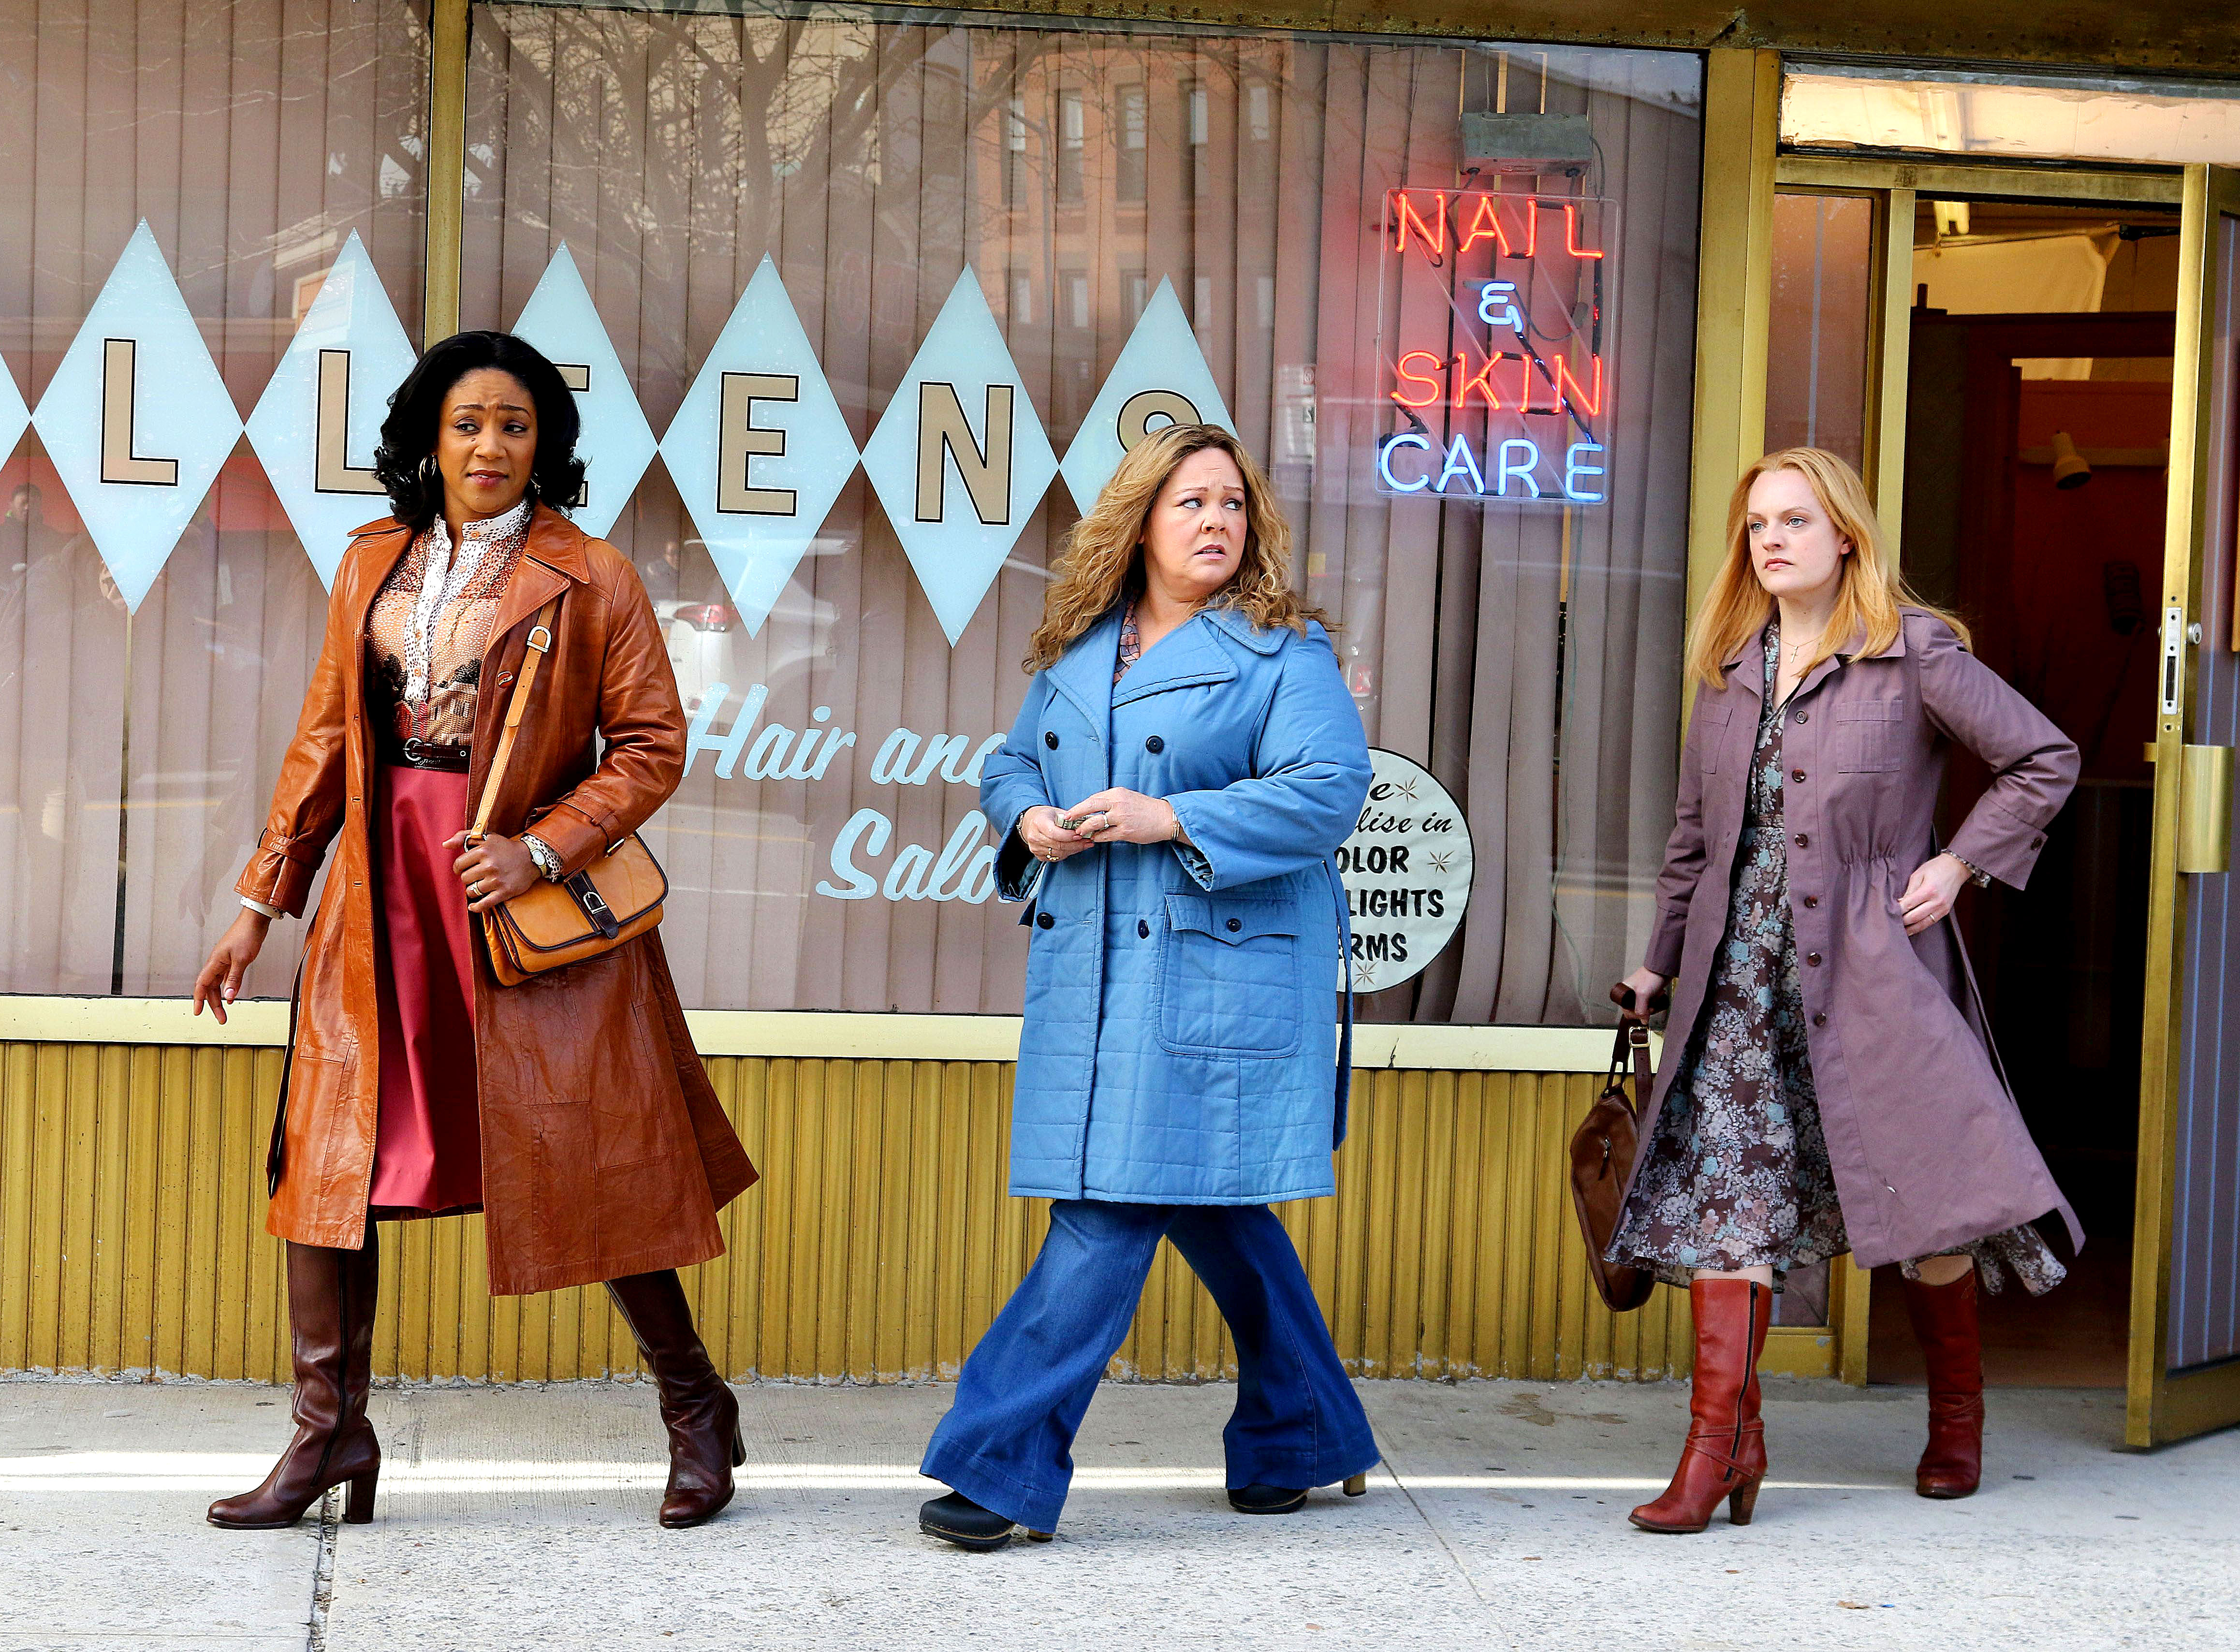 Can't Miss Summer Movie Preview - This is one trio we wouldn't want to tussle with. Melissa McCarthy , Tiffany Haddish and Elisabeth Moss play the wives of Irish mobsters who take over their husbands' business when the men go off to prison.